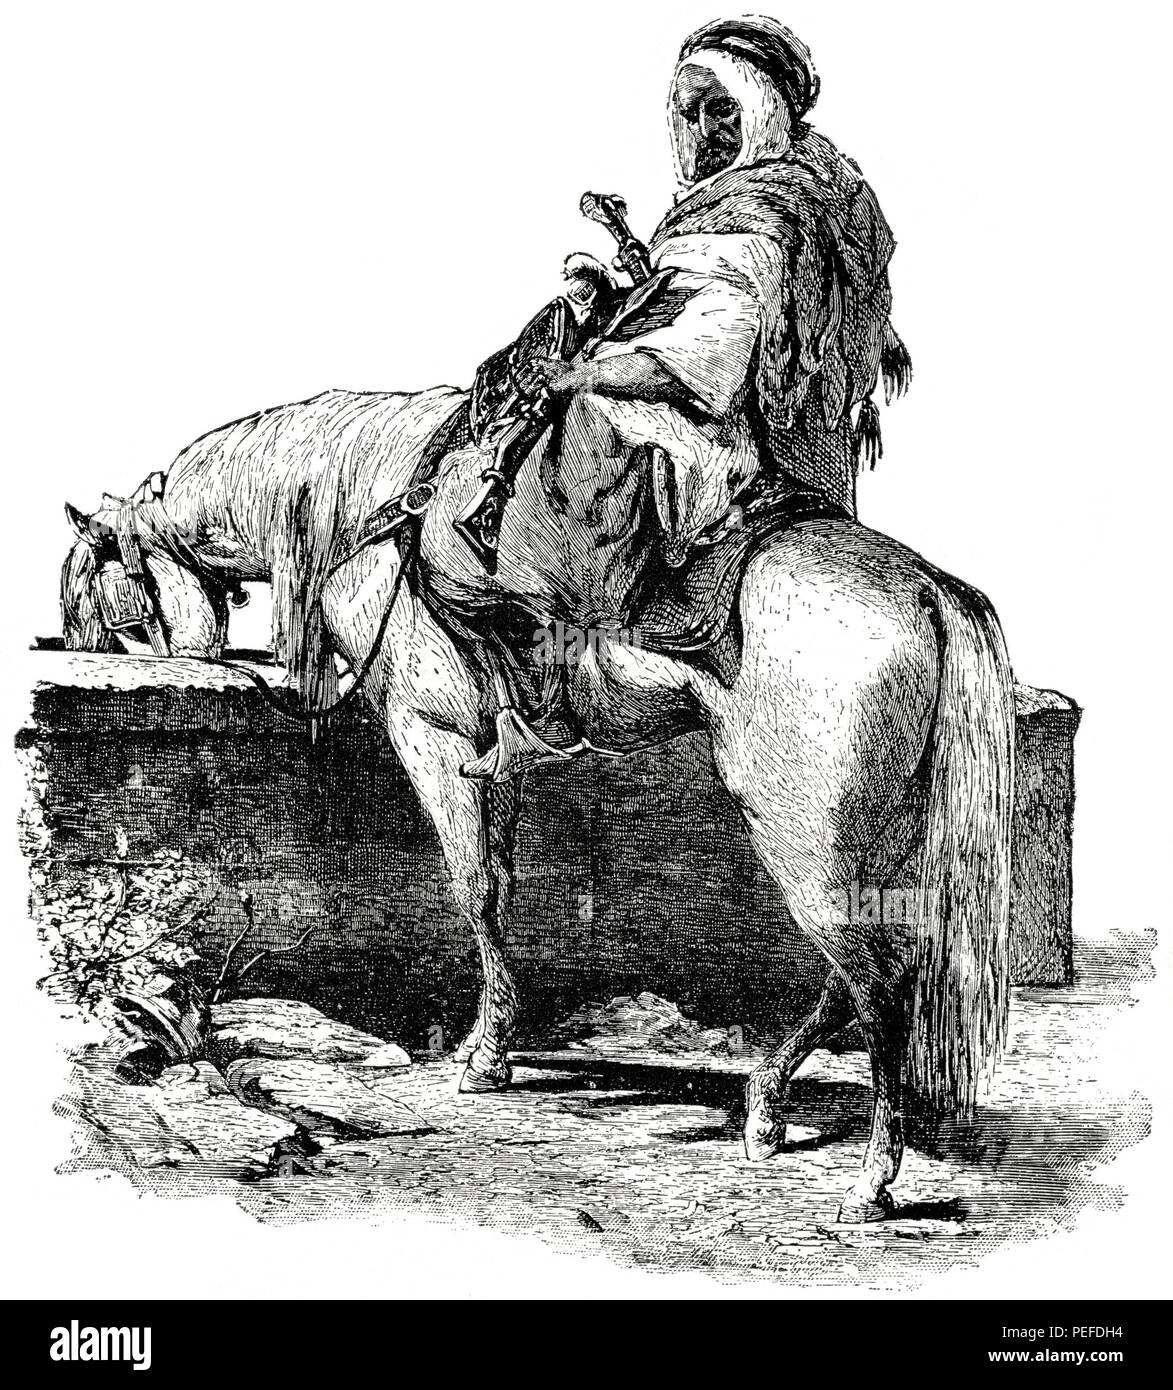 Syrian Bedouin at Desert Well, 1890's, Illustration, Classical Portfolio of Primitive Carriers, by Marshall M. Kirman, World Railway Publ. Co., Illustration, 1895 - Stock Image